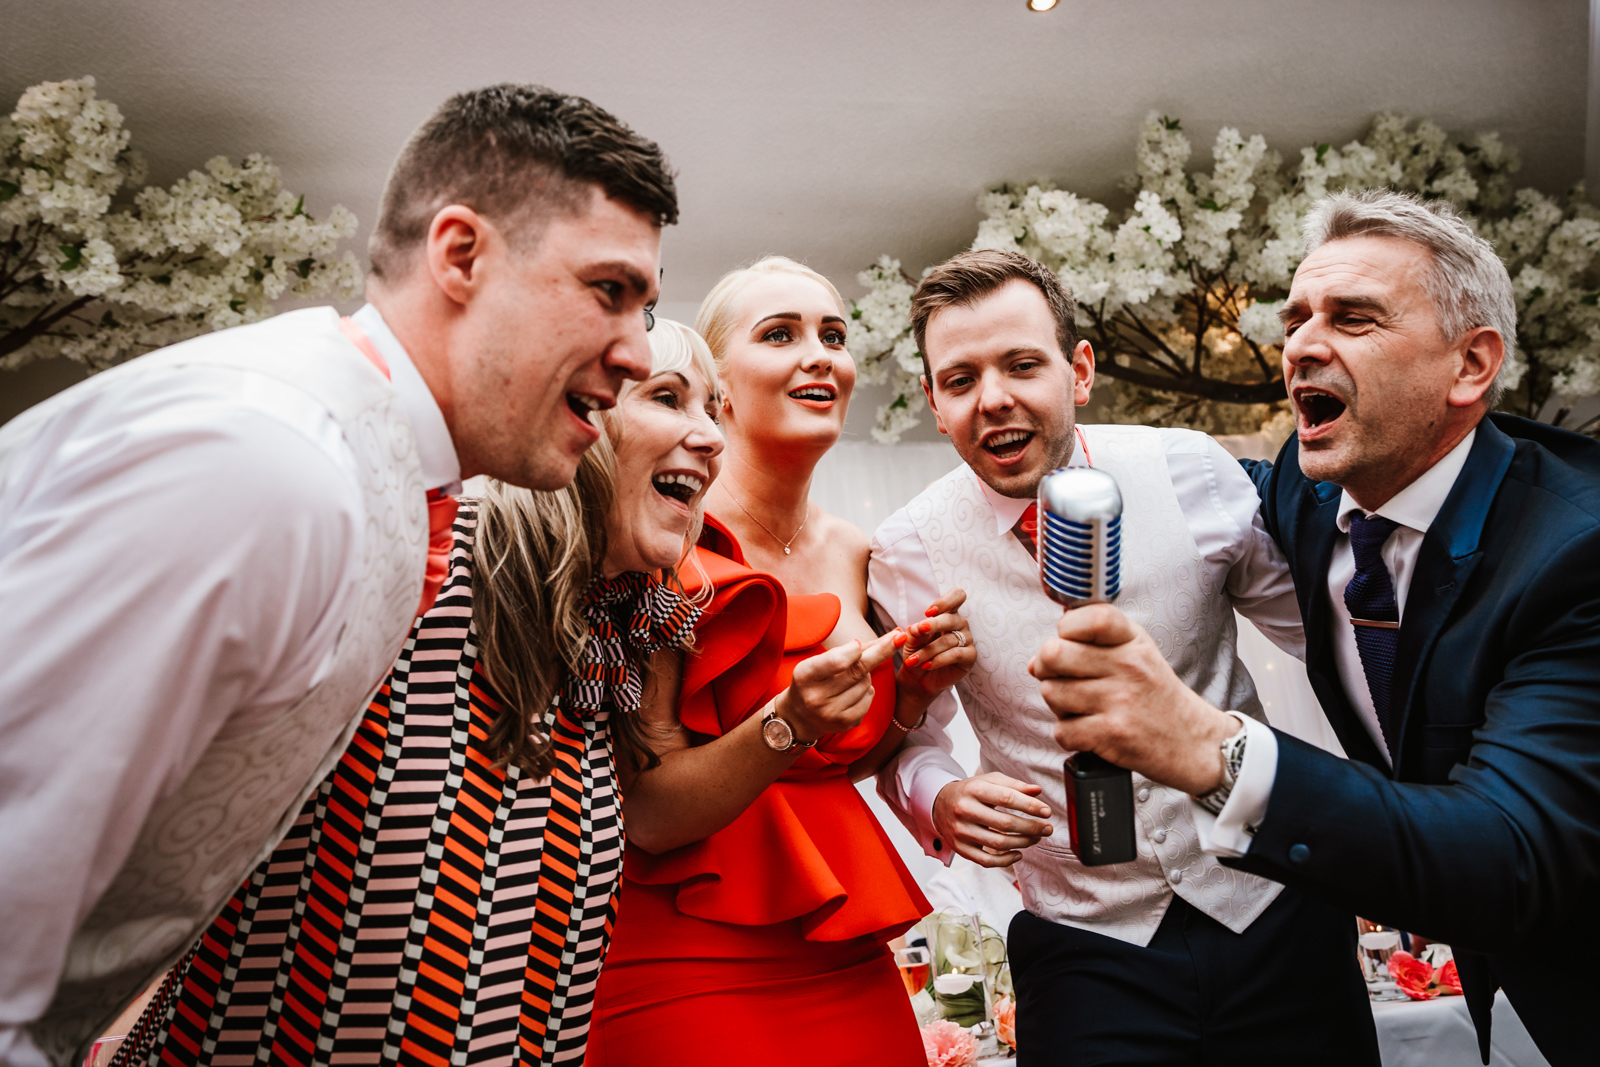 Wedding guests singing